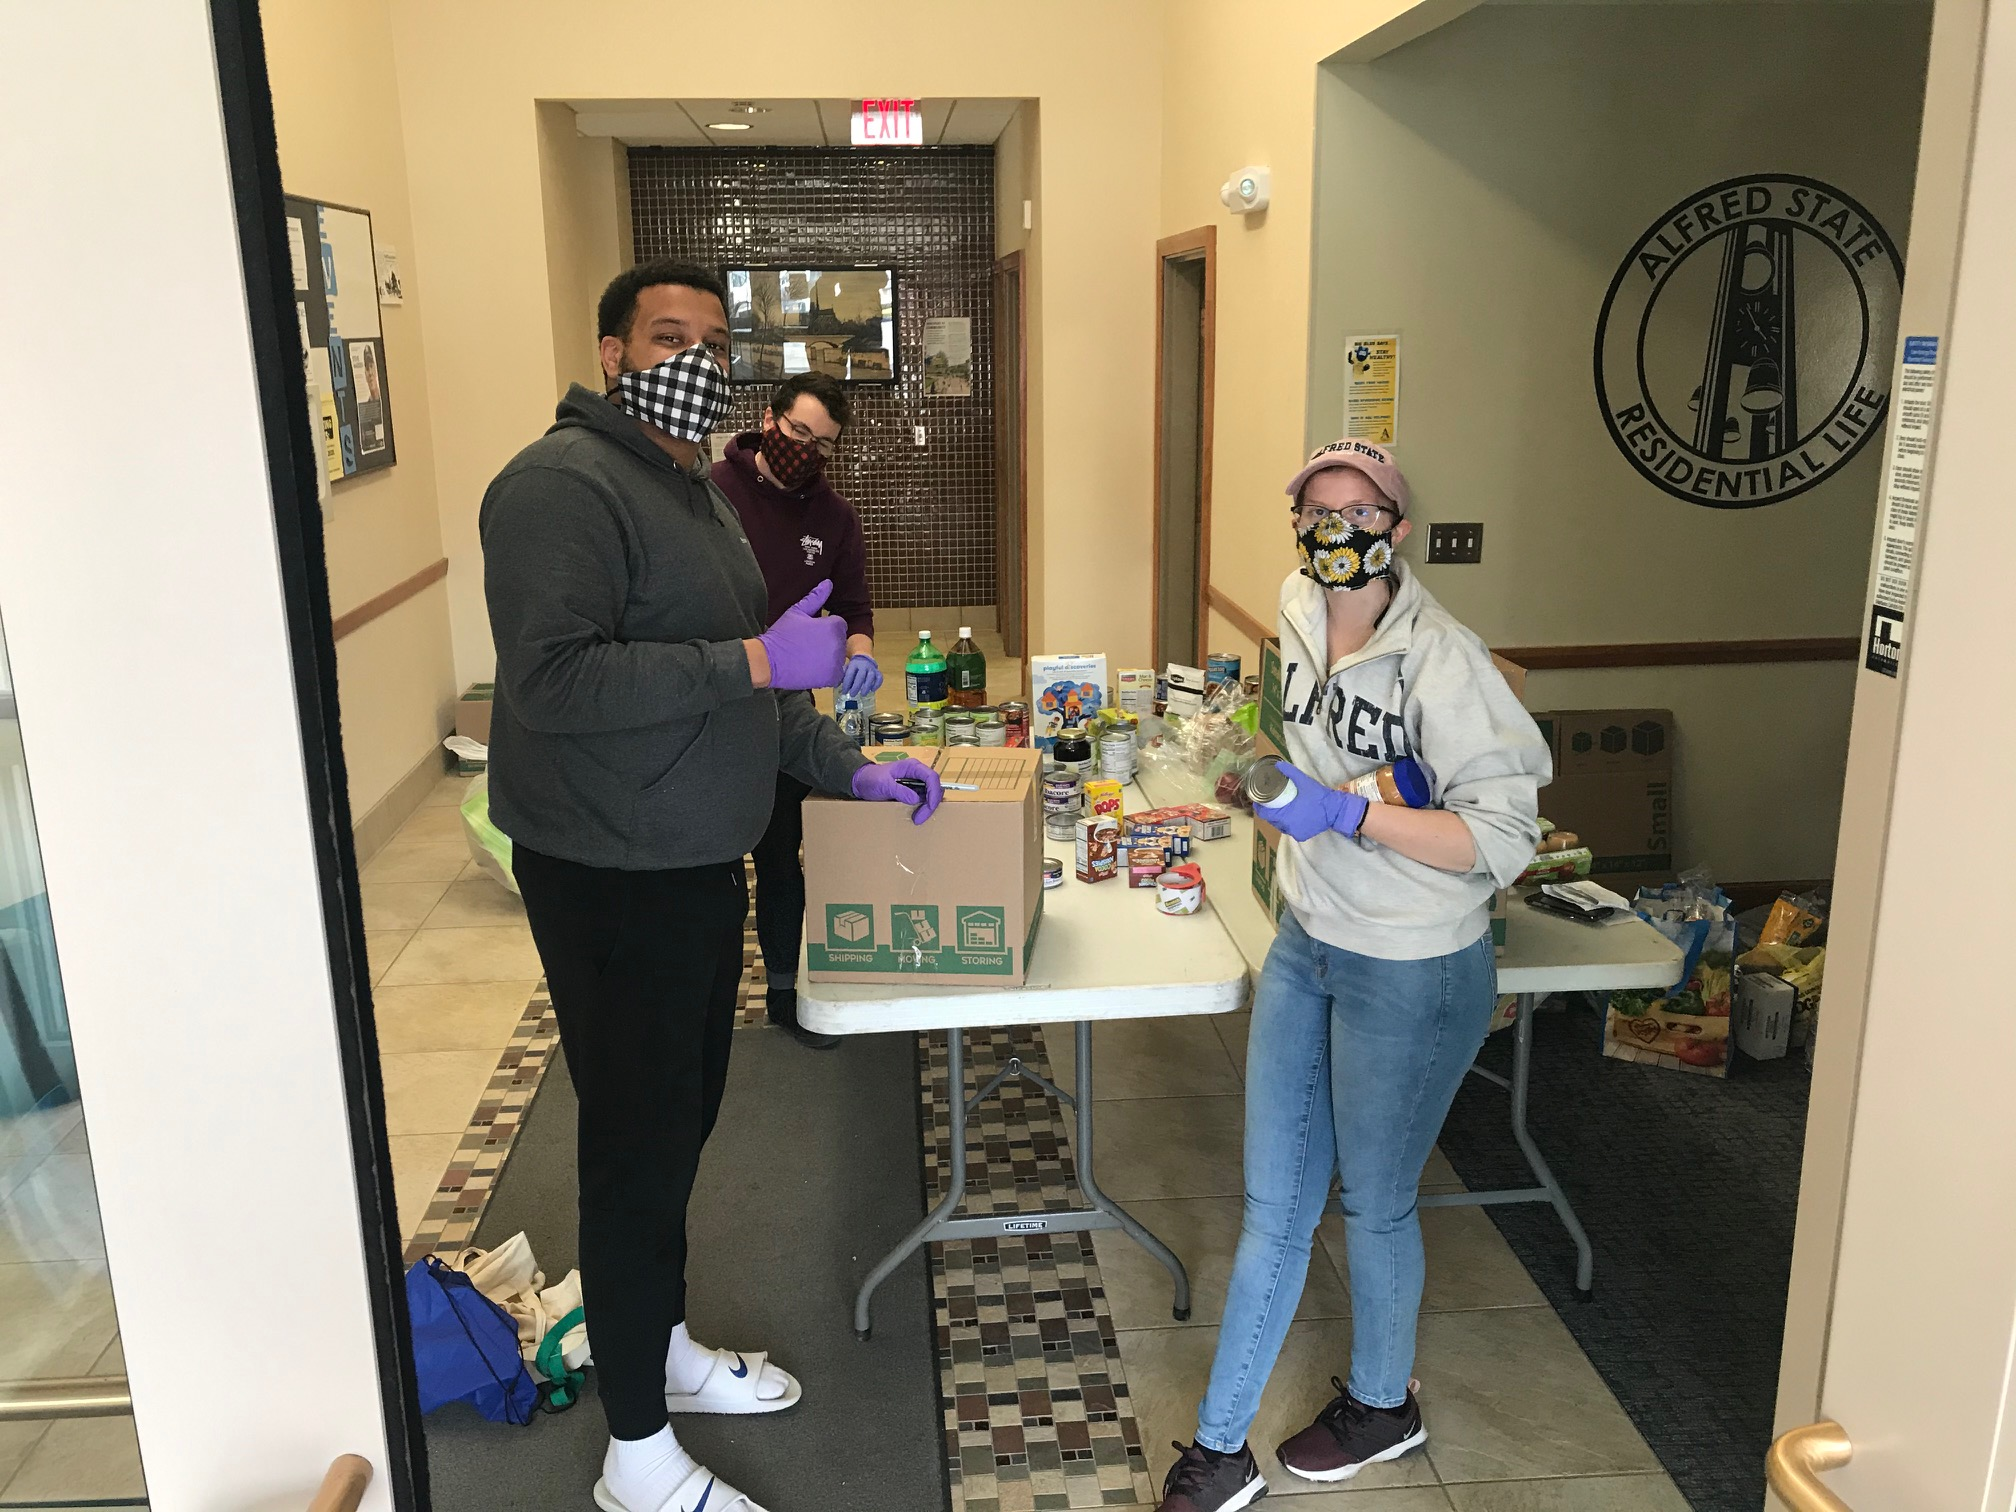 Alfred State staff members help a student through the new pilot food pantry program